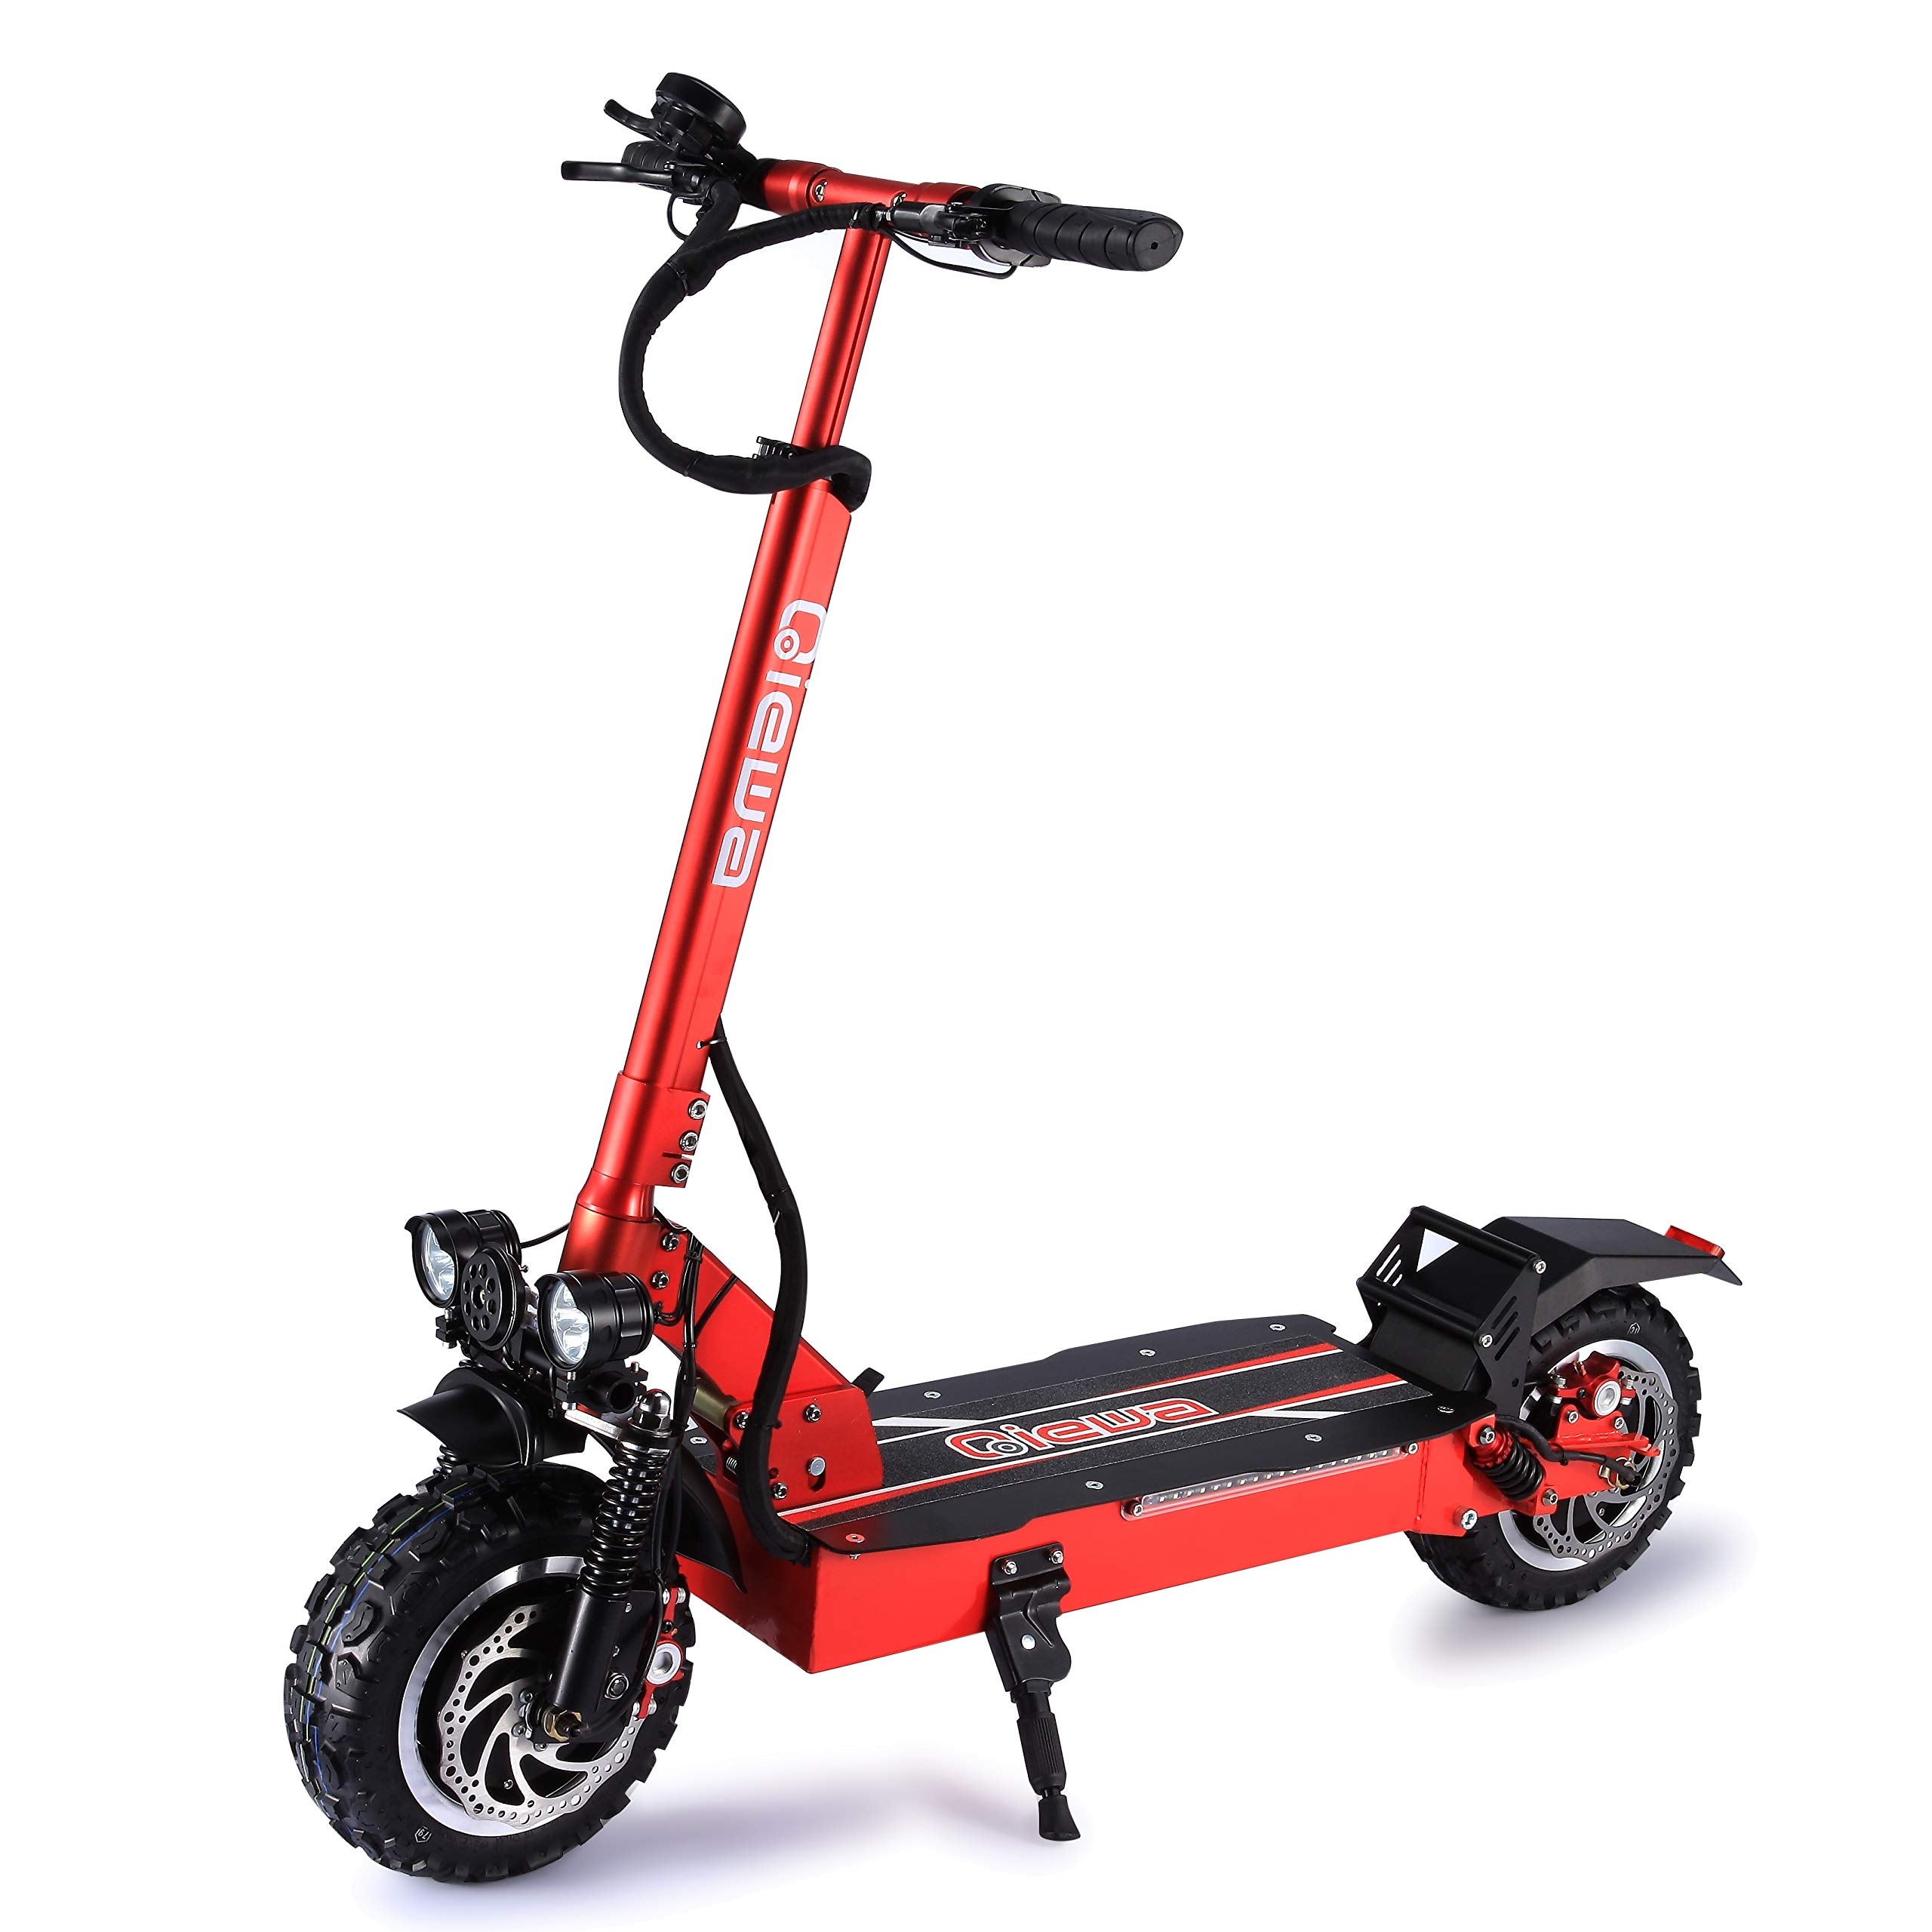 QIEWA Q-Power Double Motors Style Electric Scooter |60Volts+26AH Battery |Max Speed 56MPH |Travel Range 55 Miles| 45 Degree Double Shock Absorber | Double Hydraulic Brake | 3200Watts Doubles Motors |